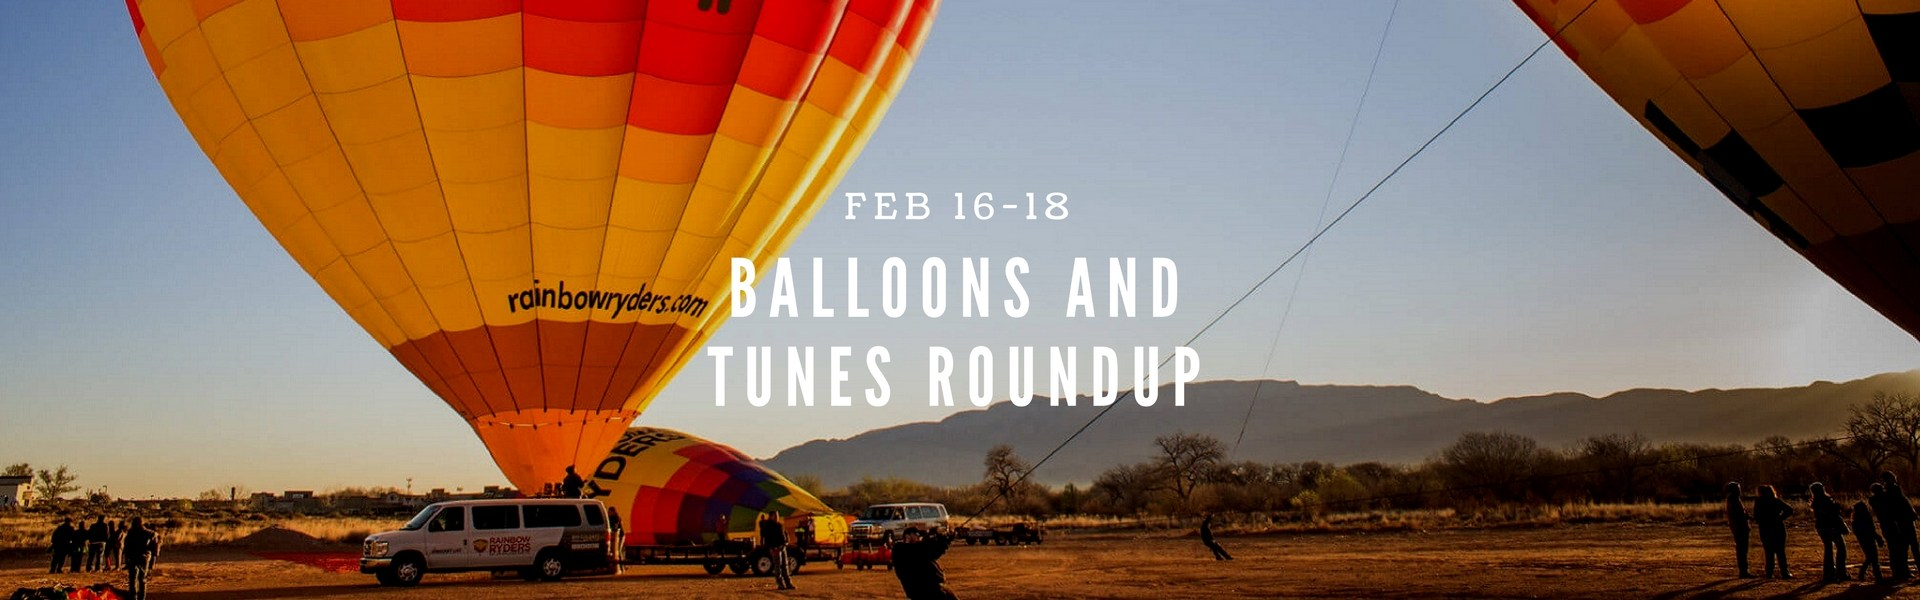 Balloons and Tunes Roundup is Small Town Family Fun